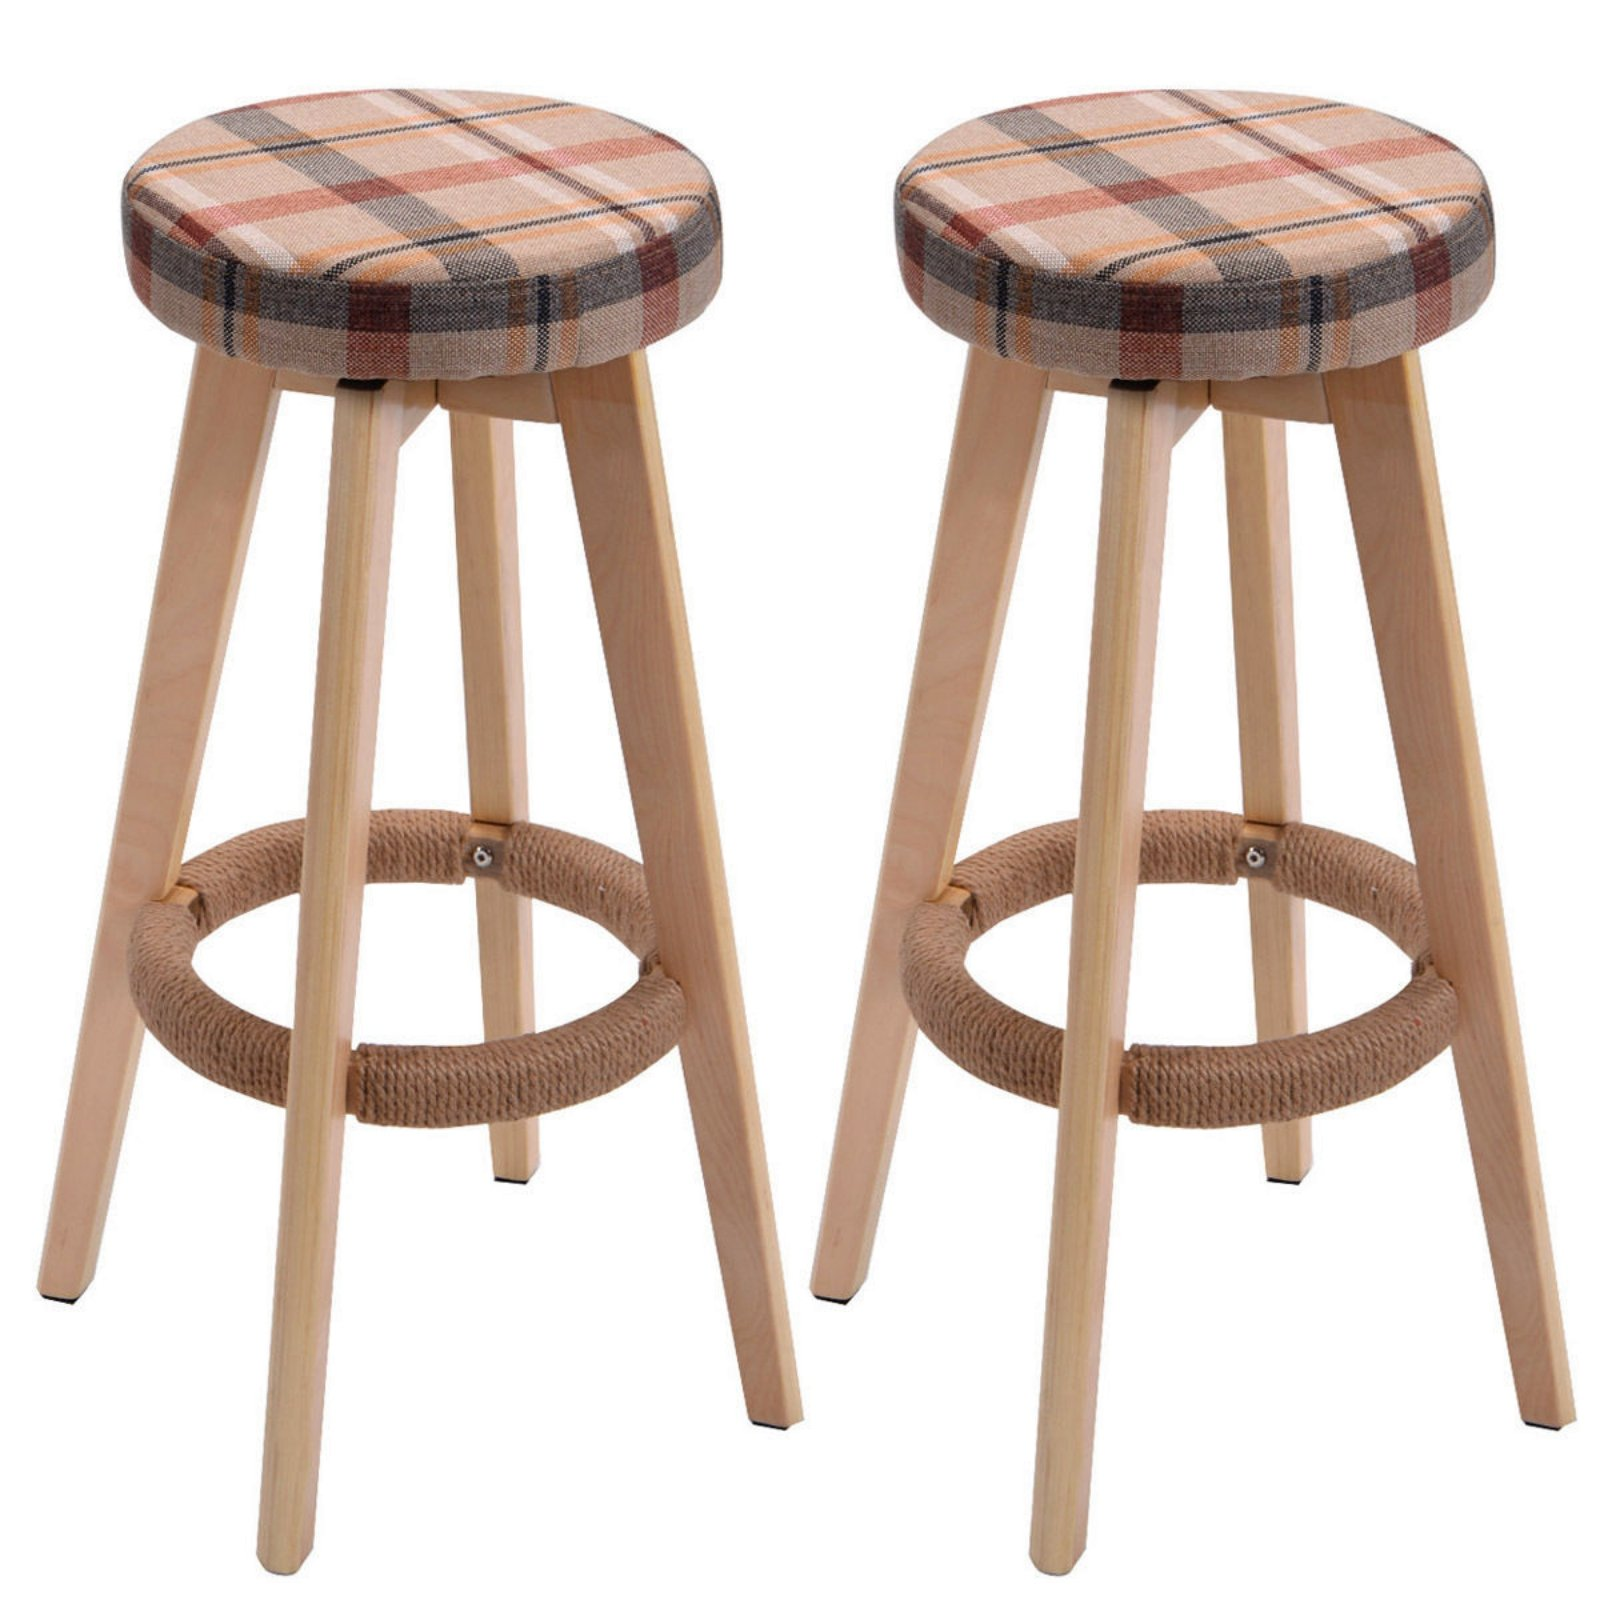 Set of 2 Winsome Round Wood Bar Stool Dining Chair Counter Height 29-Inch Brown #728